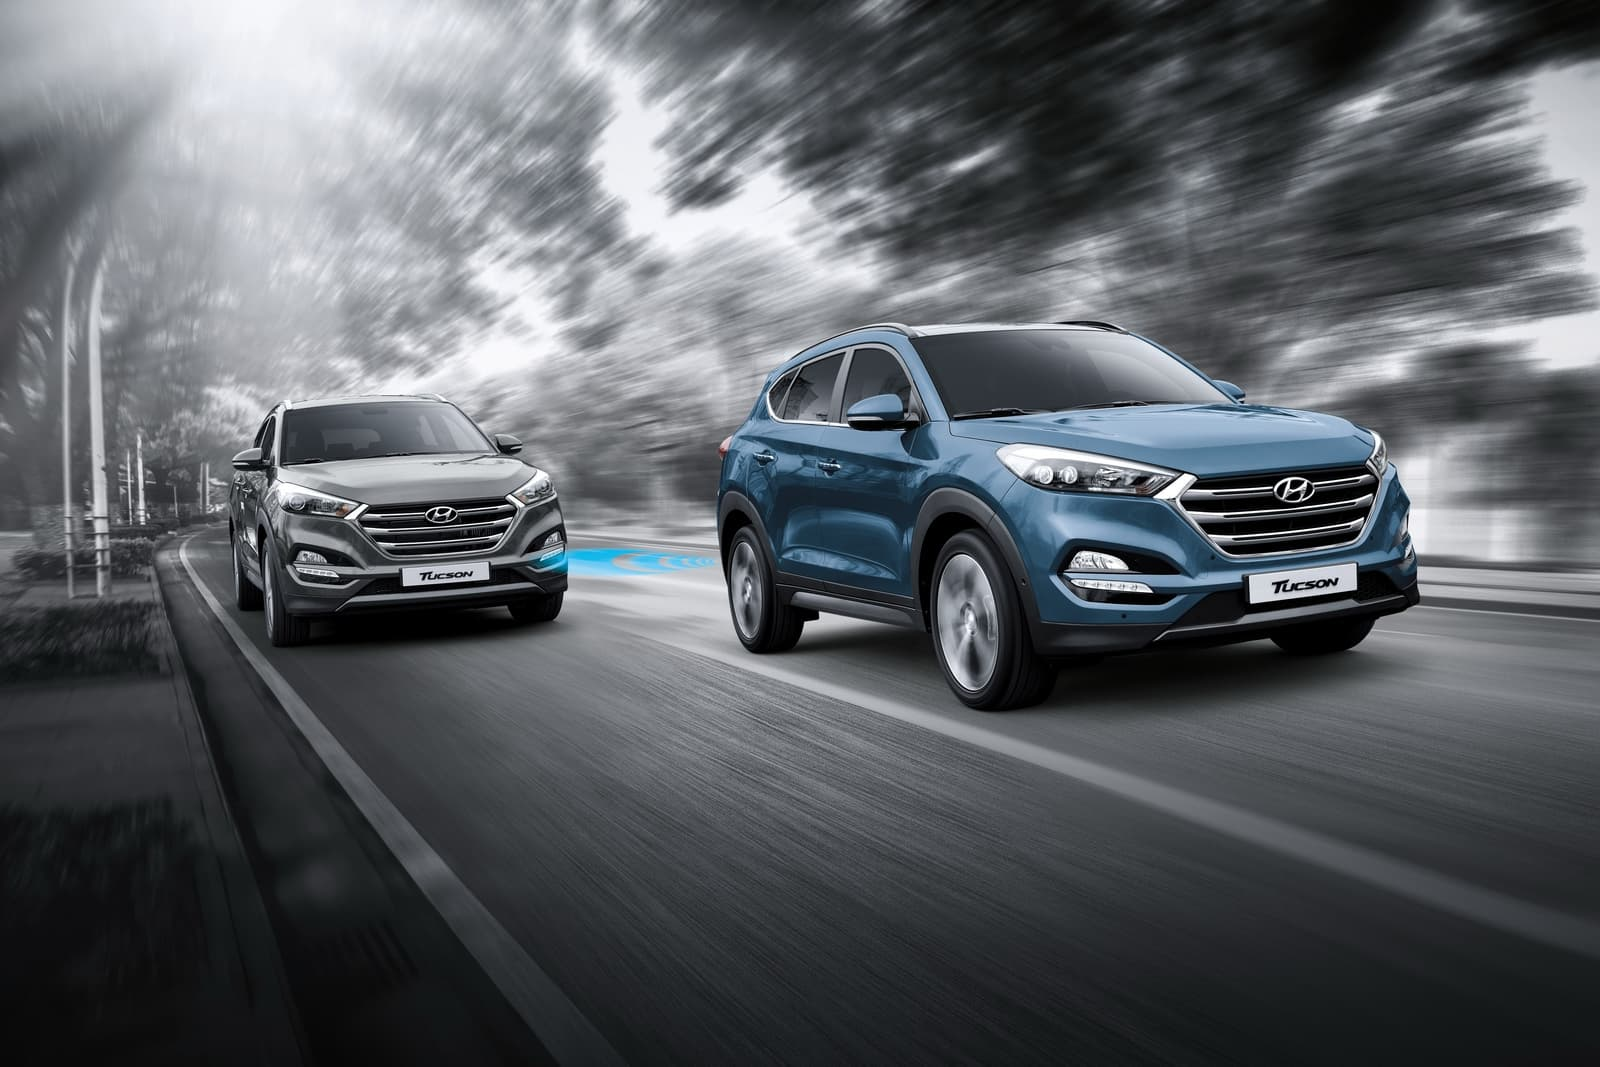 Hyundai Tucson 2016 HD wallpaper